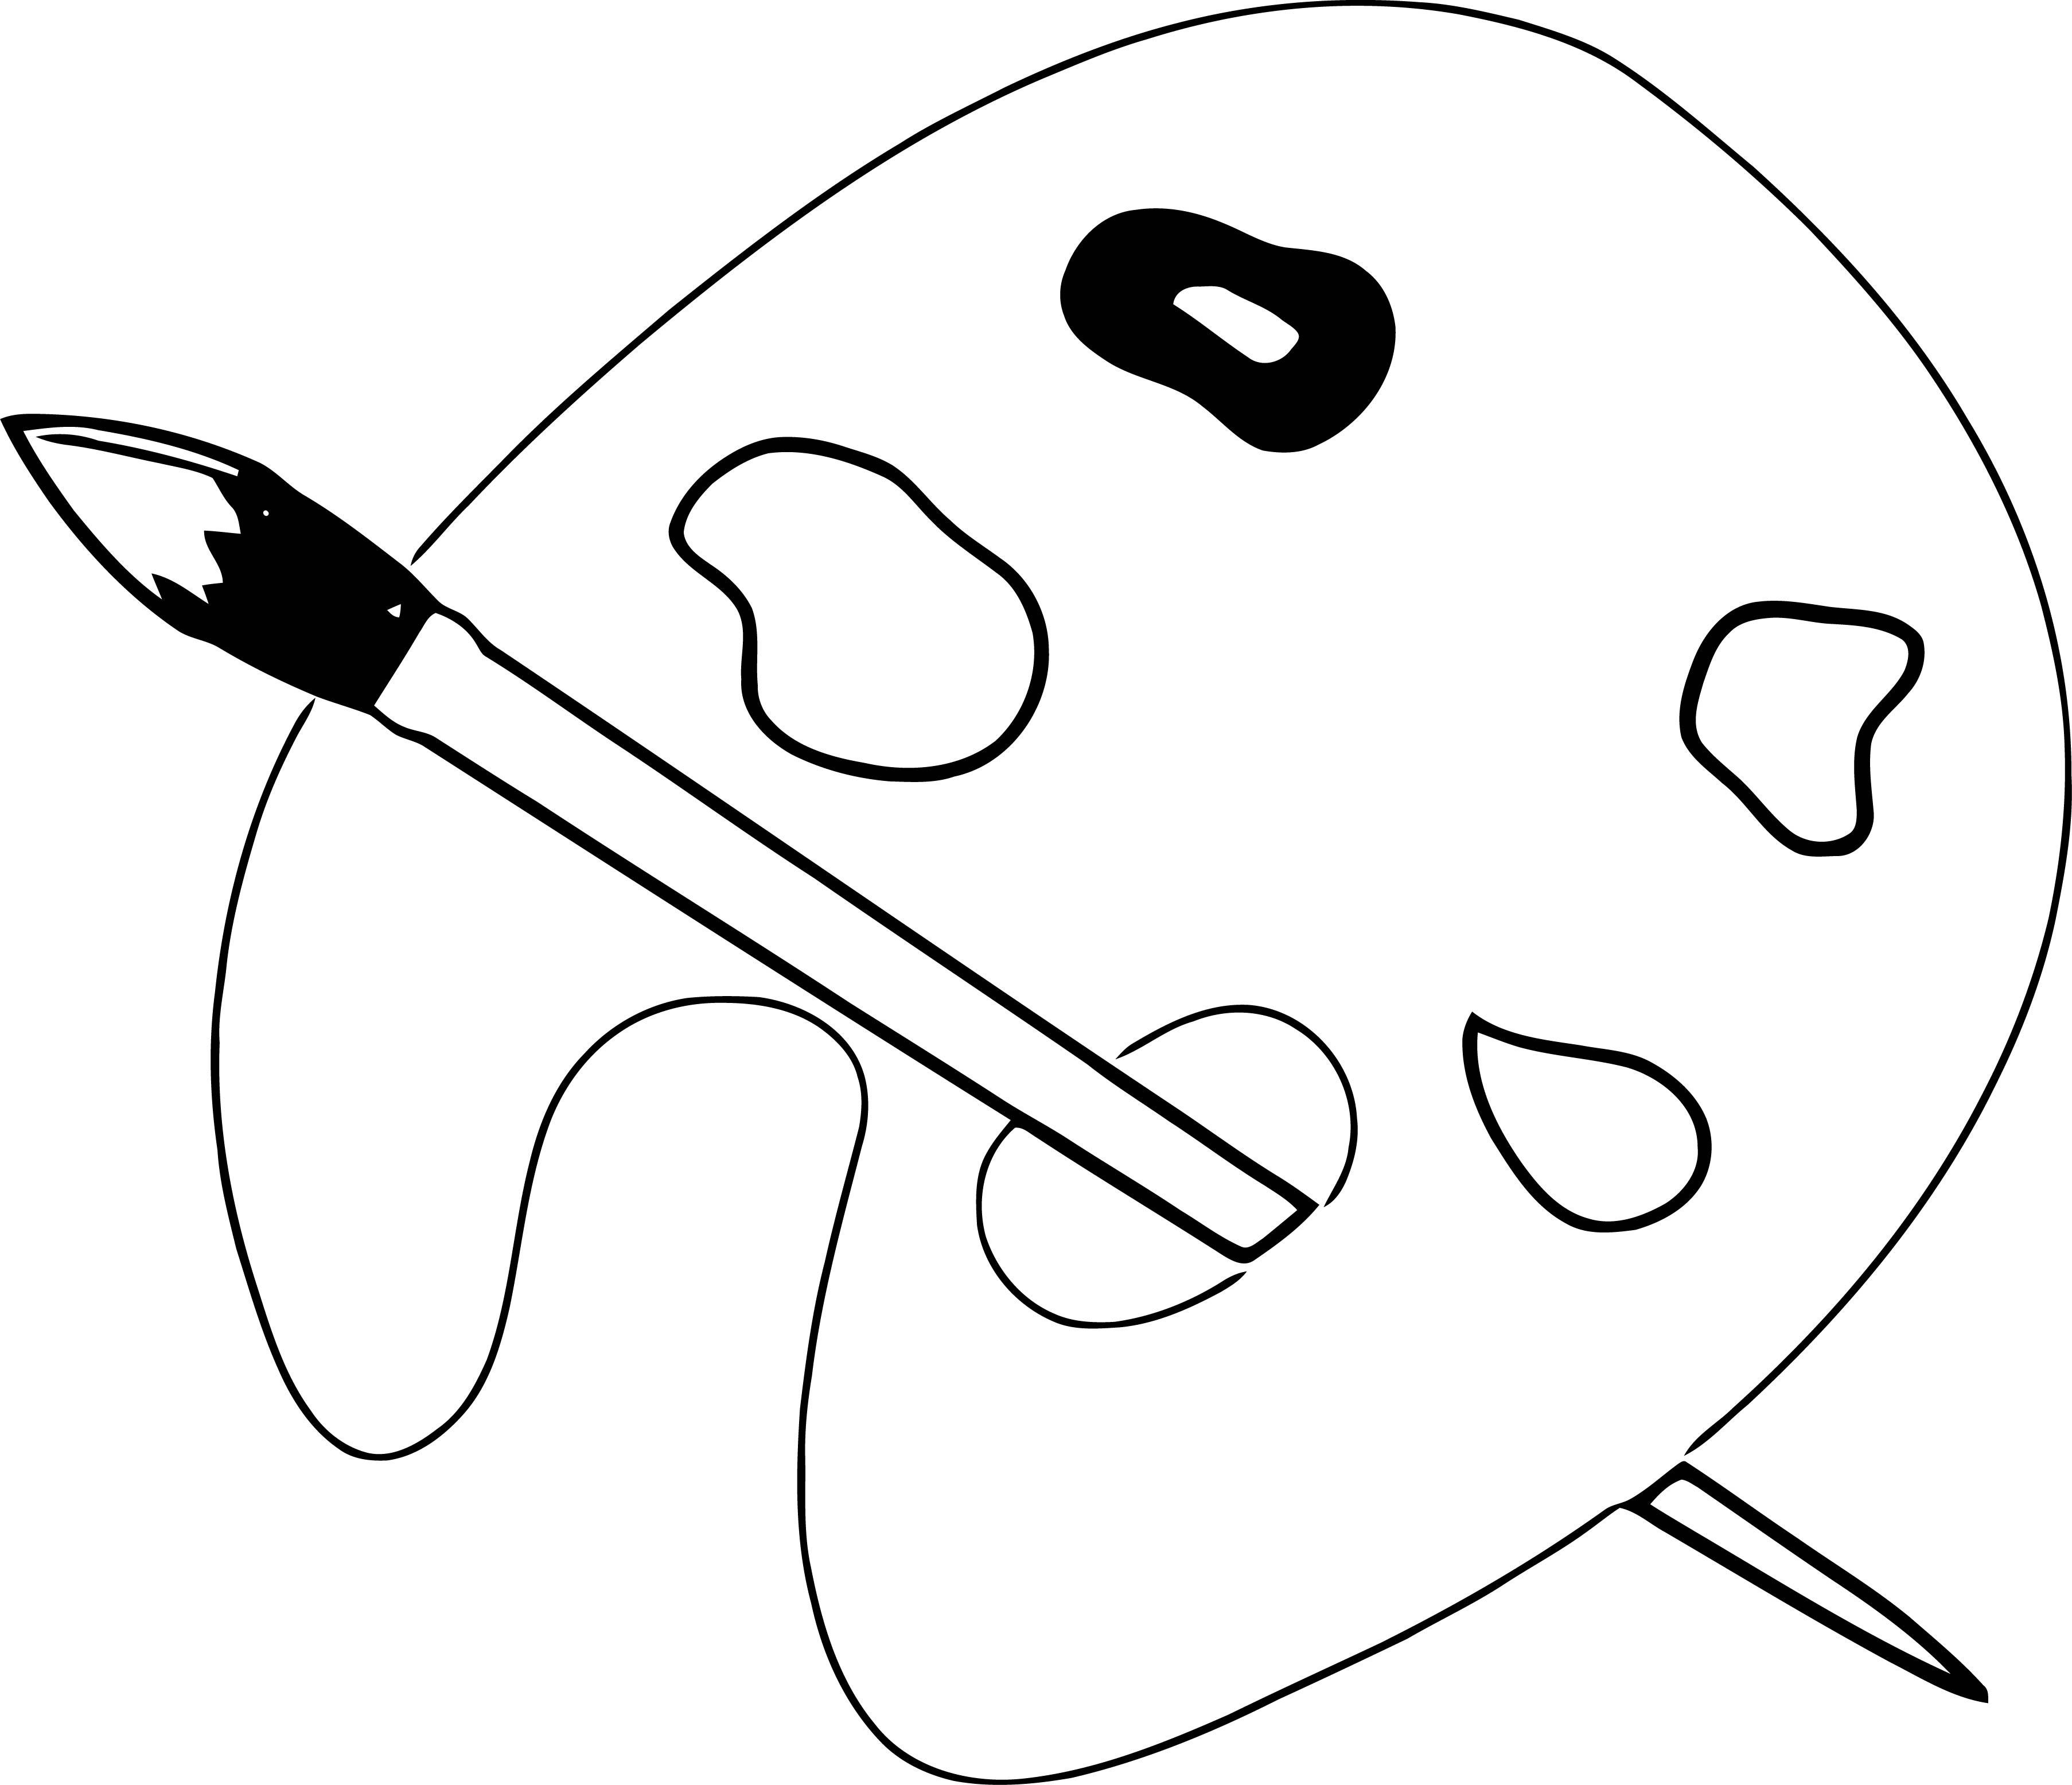 Painter Pen Just Coloring Page